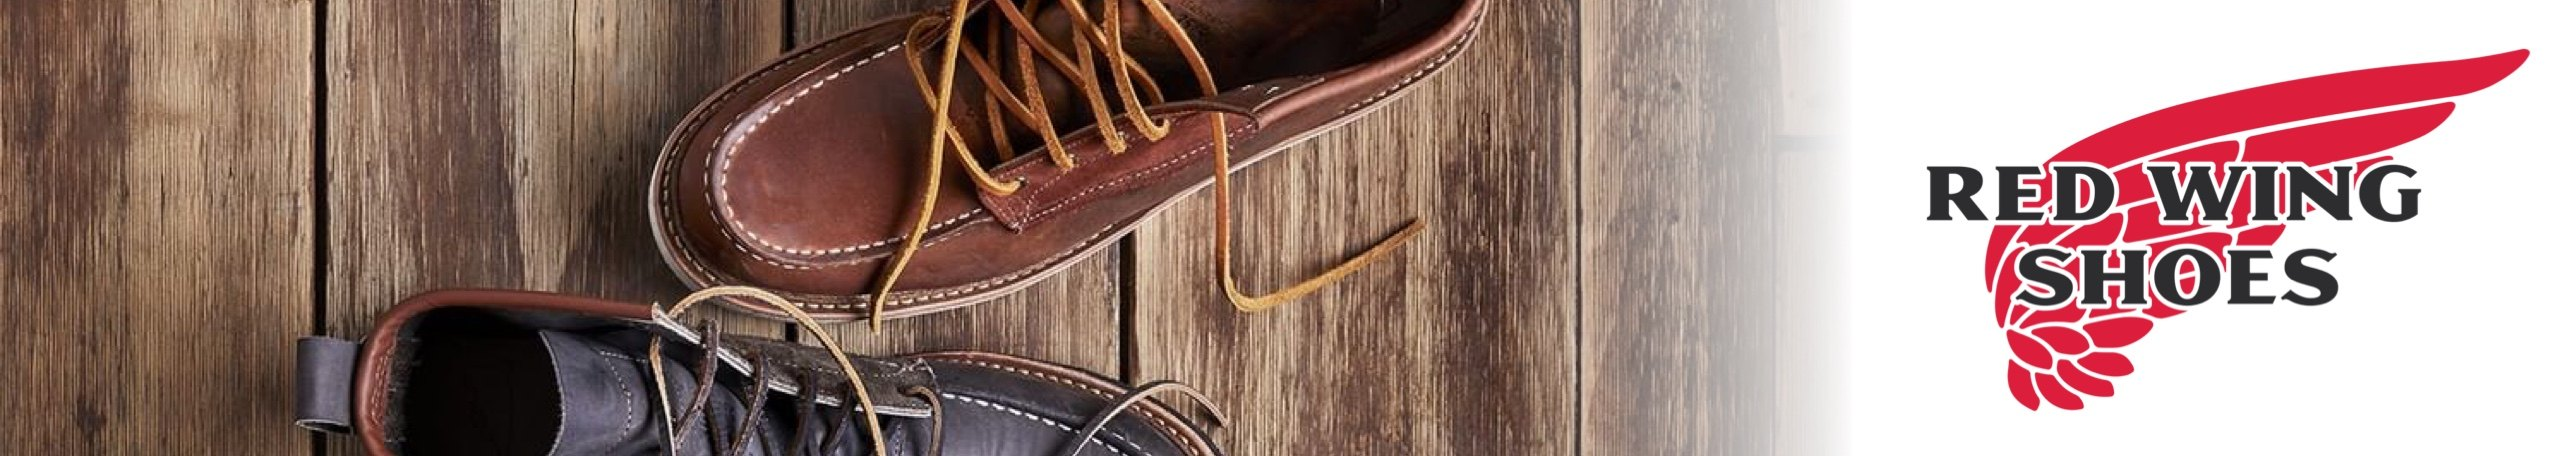 Red Wing Shoes logo with shoes